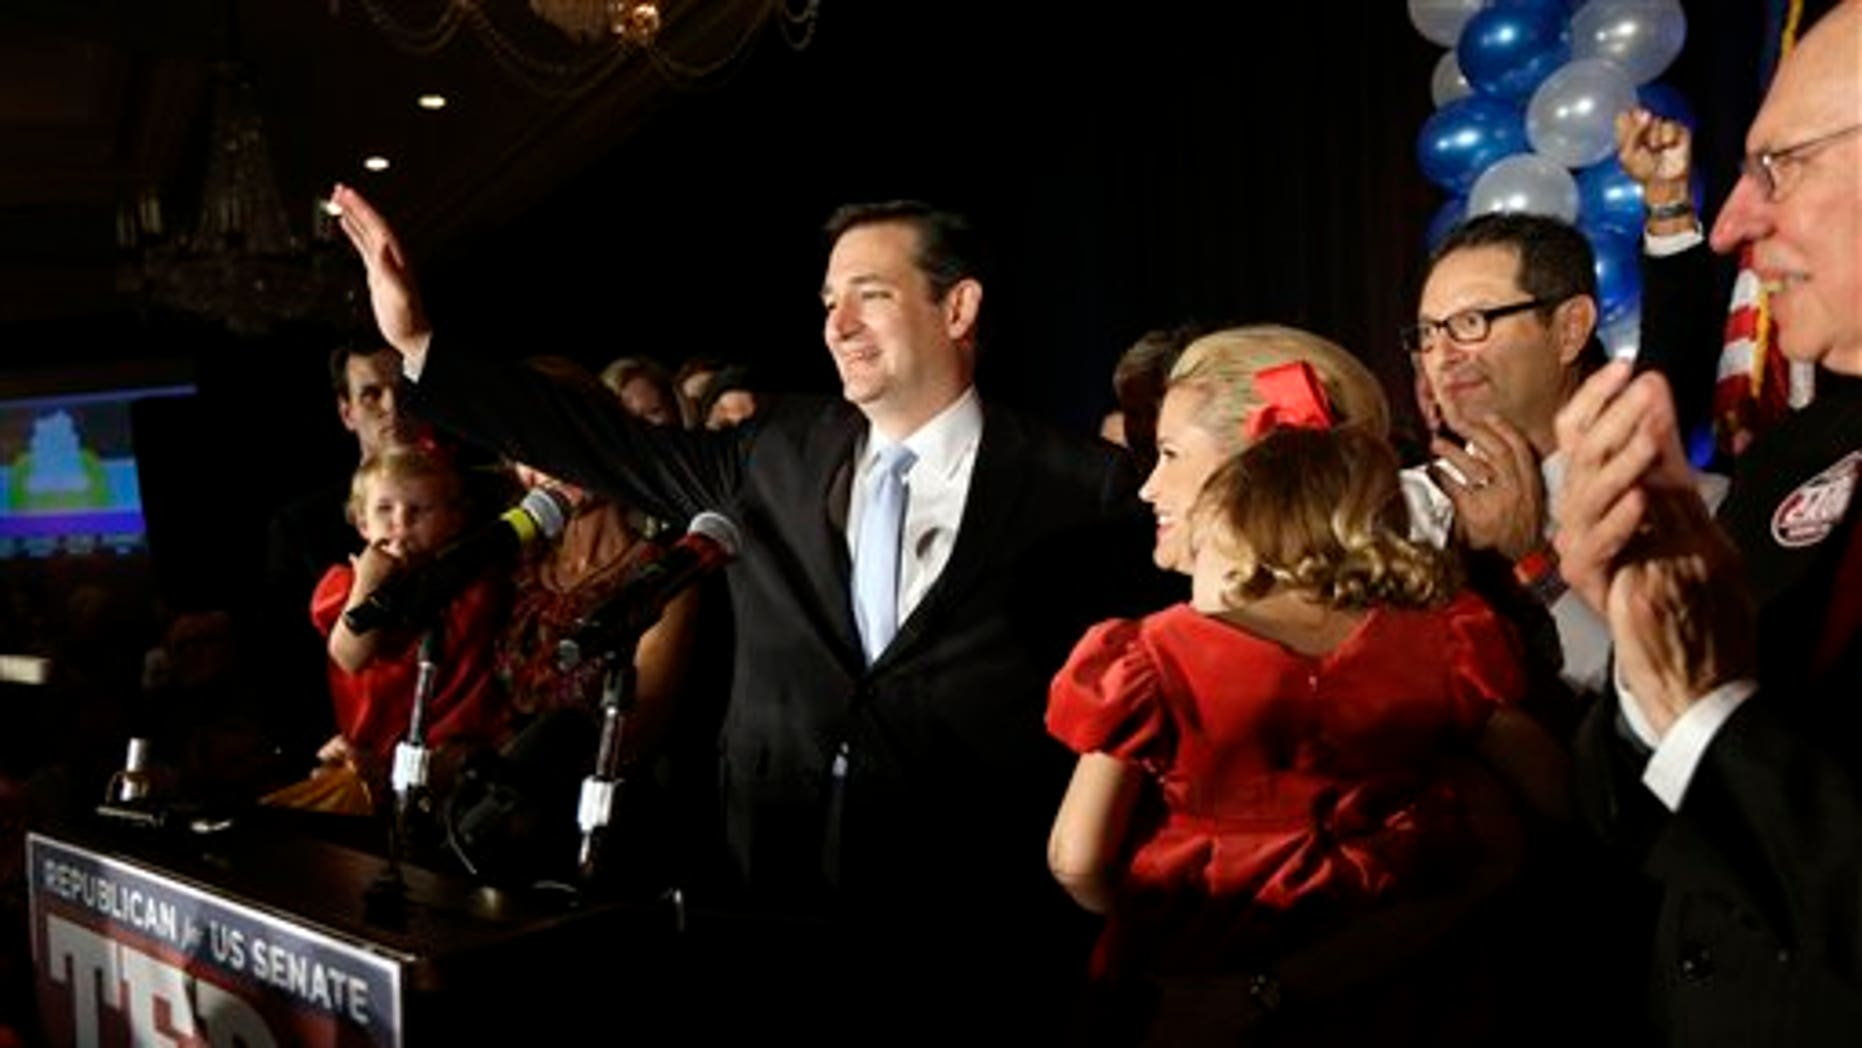 Nov. 6, 2012: Republican candidate for U.S. Senate Ted Cruz thanks the crowd during a victory speech as he is joined on stage by his wife Heidi, right, in Houston.